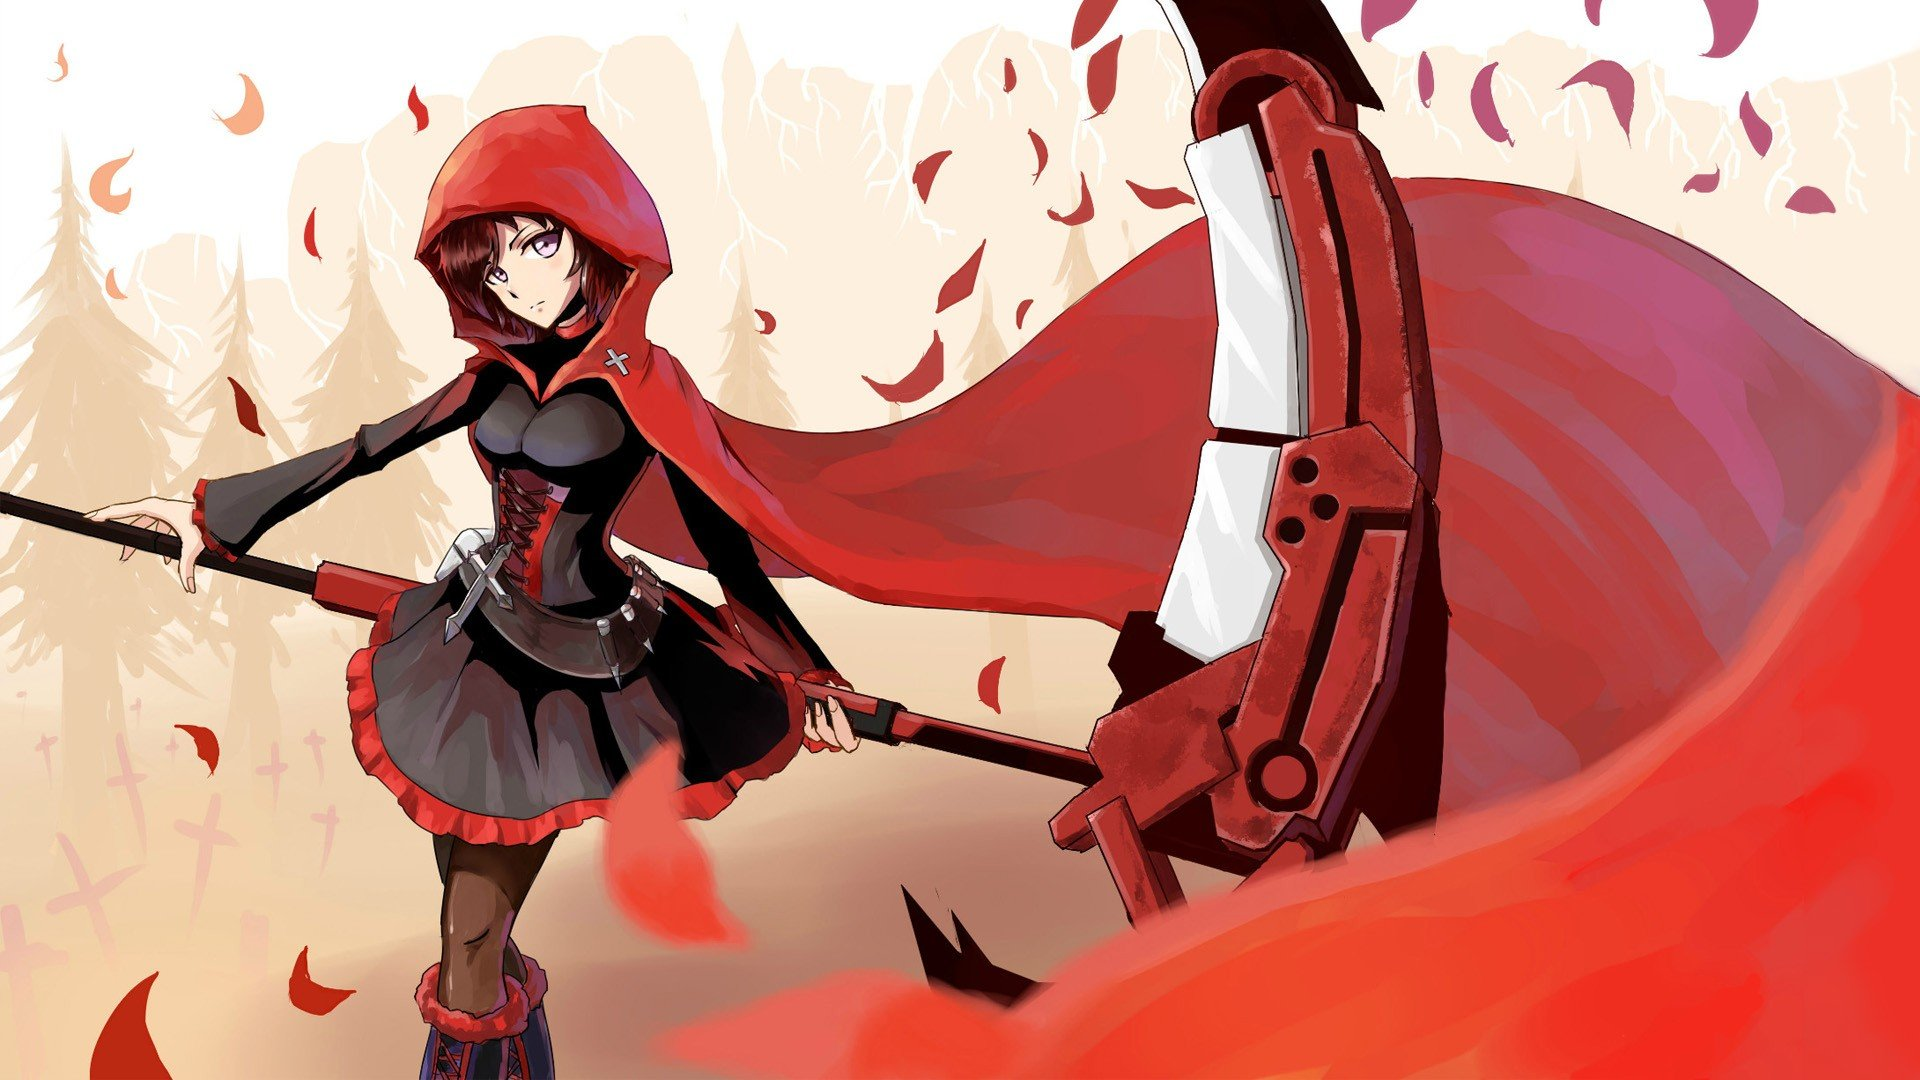 Cute Small Sad Girl Wallpaper Scythe Artwork Red Hood Wallpaper 1920x1080 238580